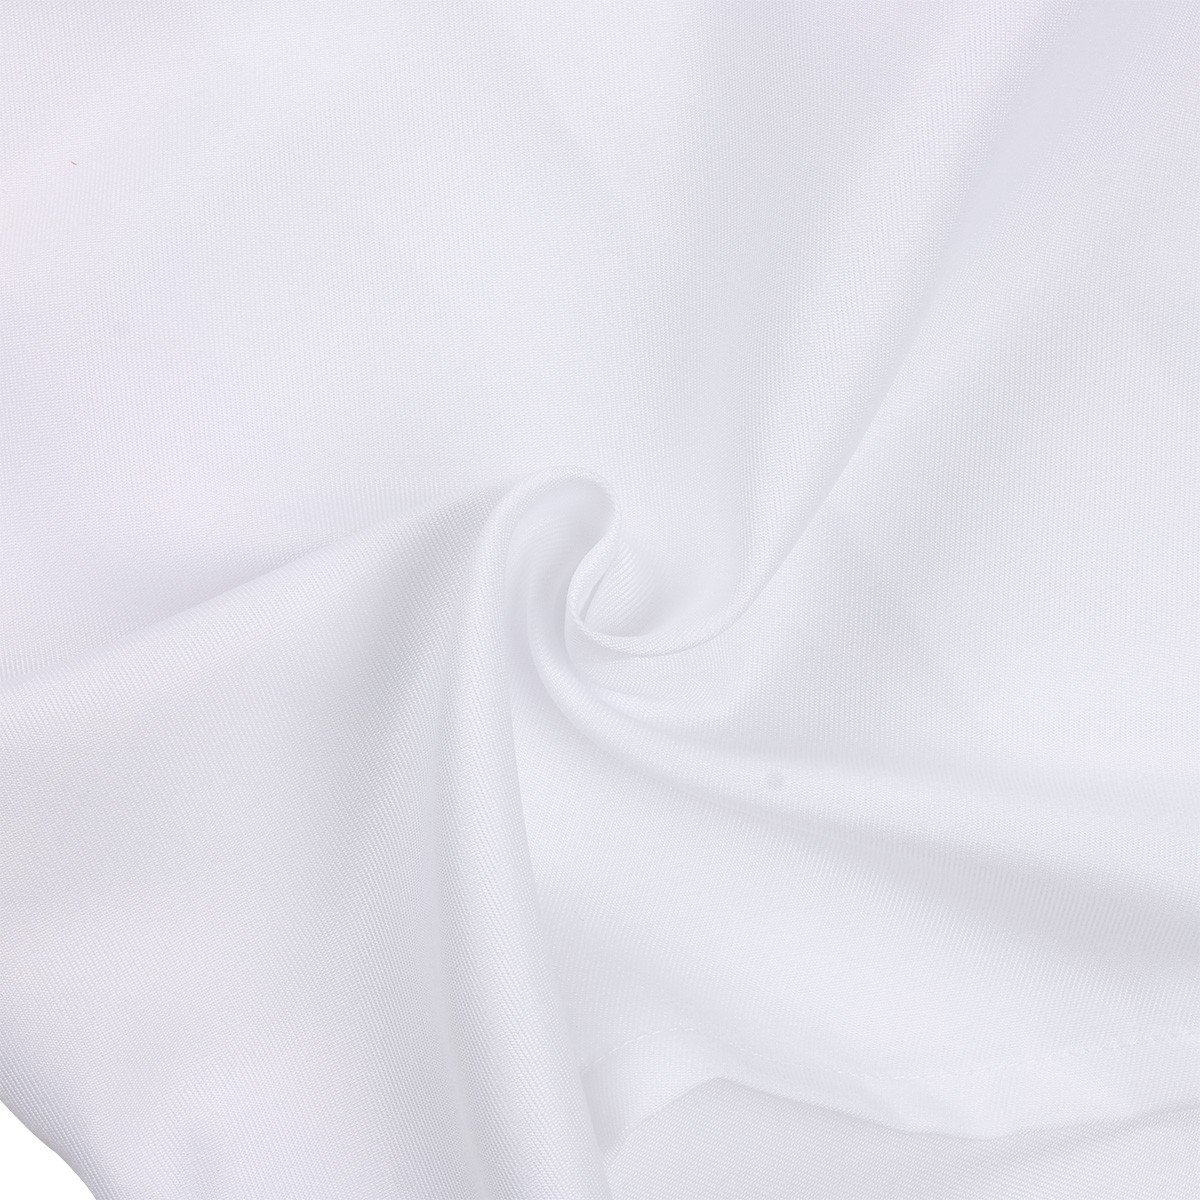 FEESHOW Kids Boy Girl Long Sleeve White Lab Coat Doctor Uniform Outfit Cosplay Costume White 7-8 by EESHOW (Image #7)